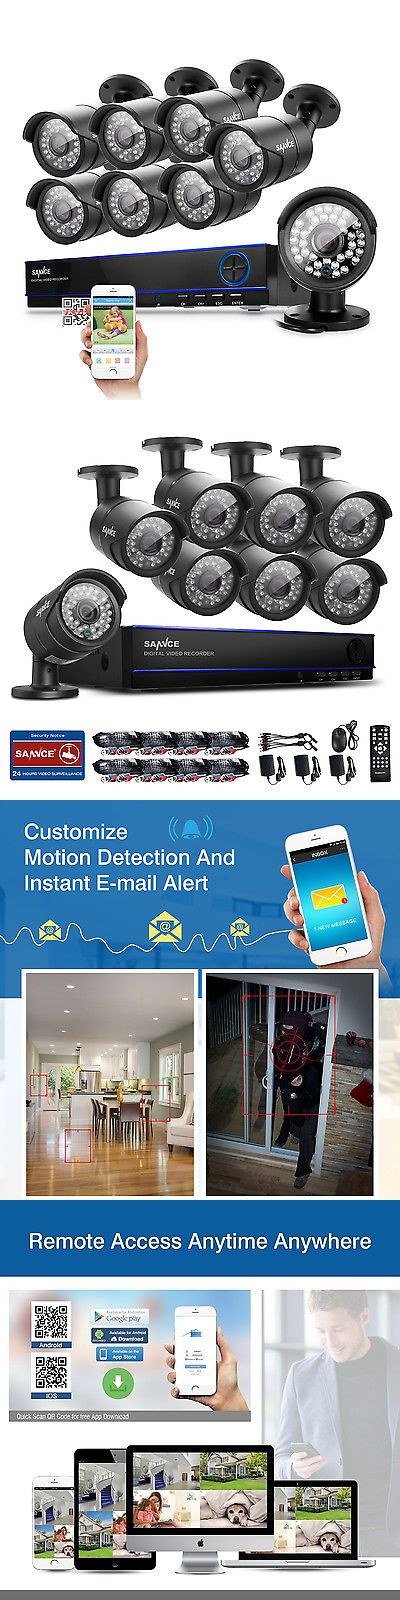 Surveillance Security Systems: Sannce 8Ch 2M 1080P Dvr Surveillance Cctv Outdoor Home Security Camera System BUY IT NOW ONLY: $259.59